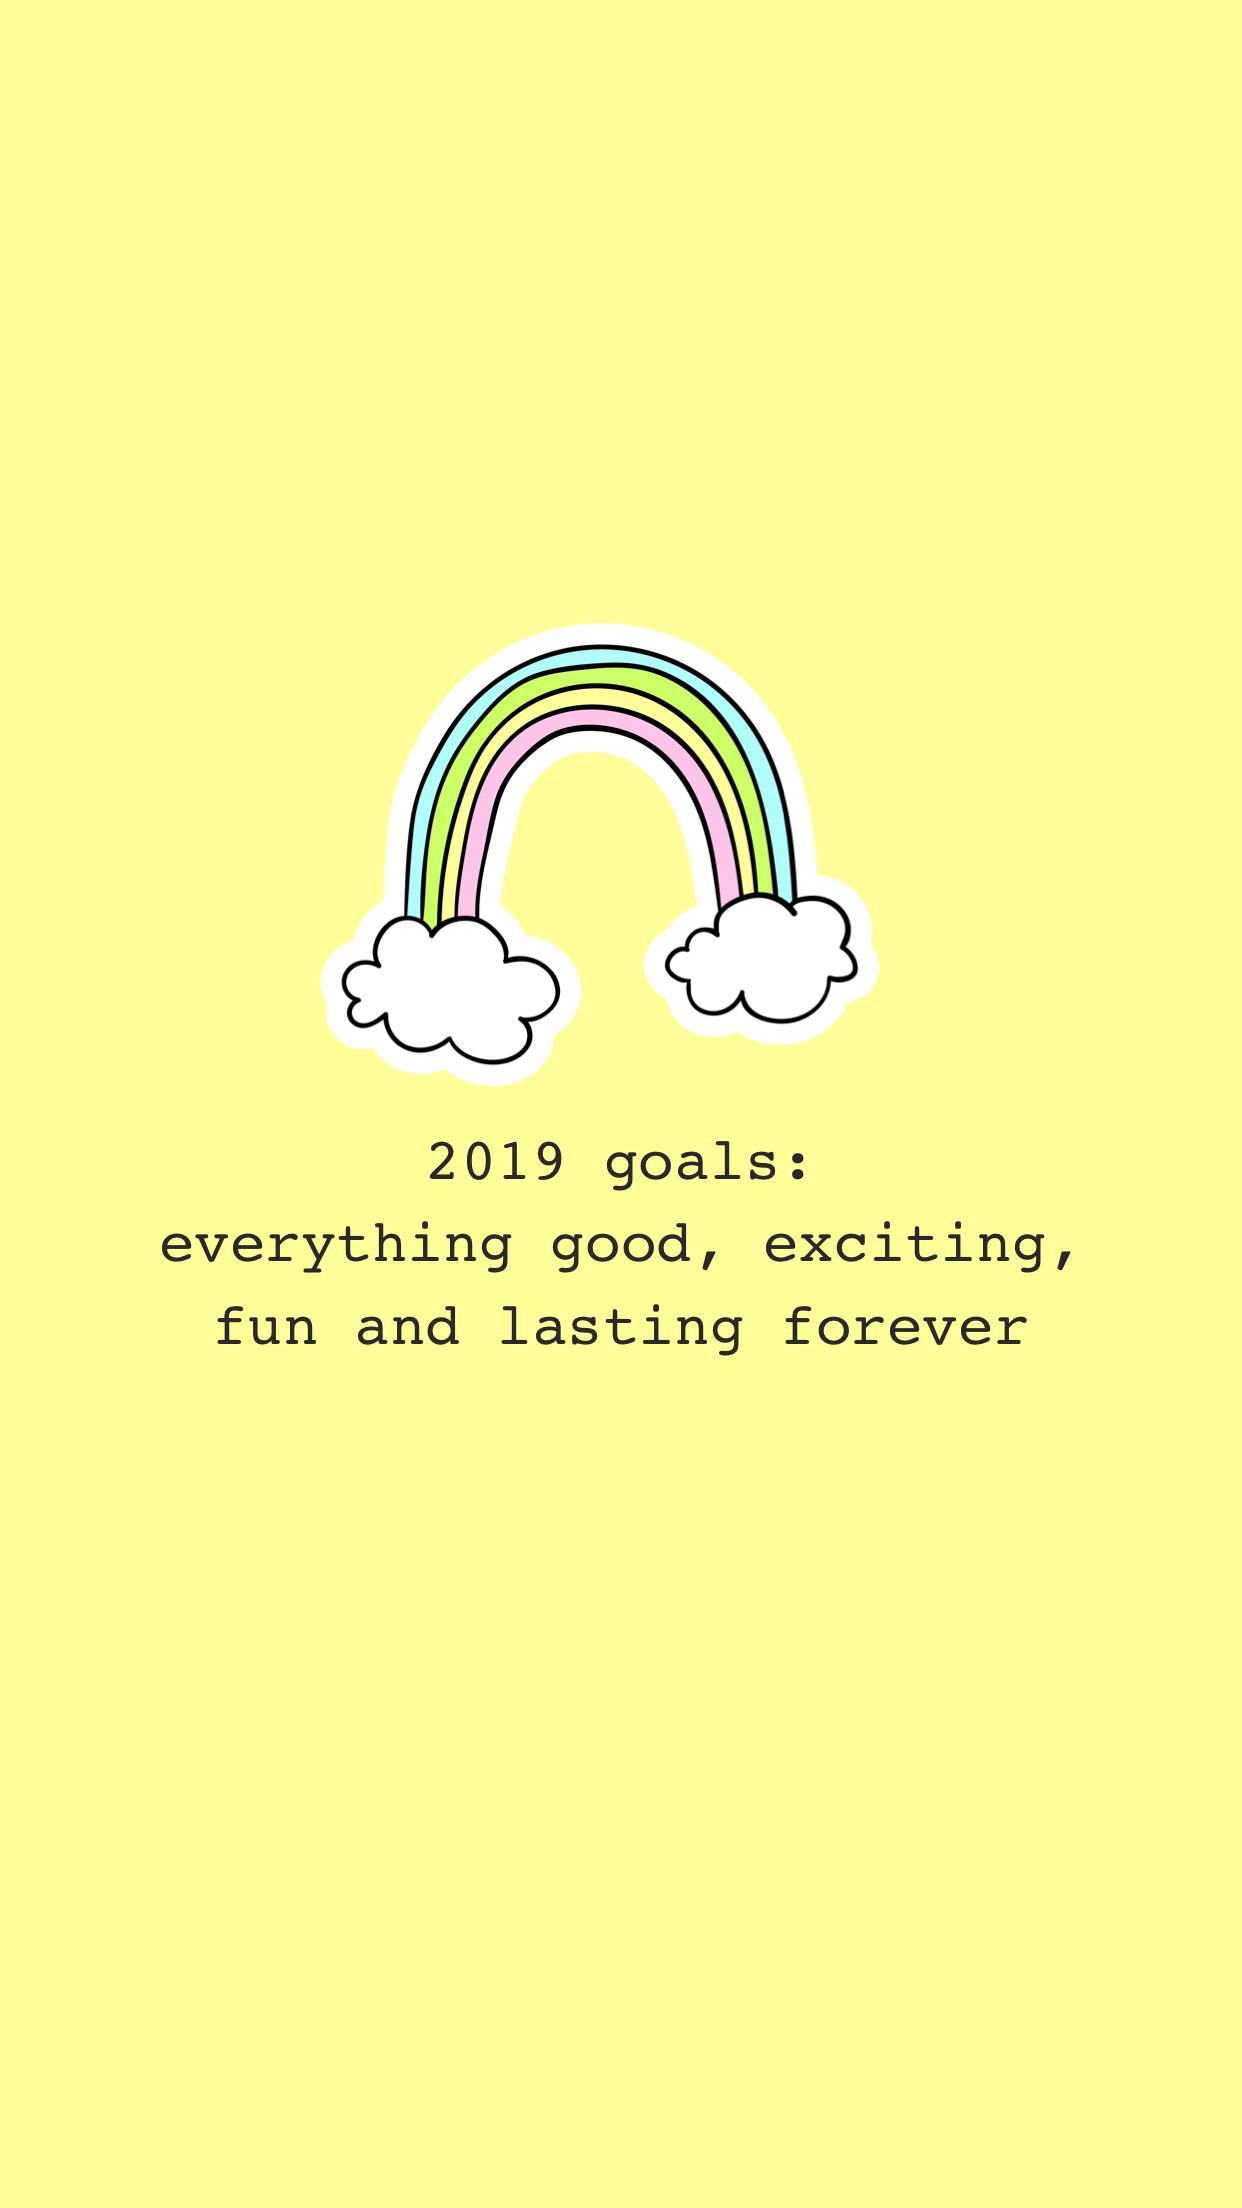 2019 Goals Forever Yellow Theme Tumblr Cool Instagram